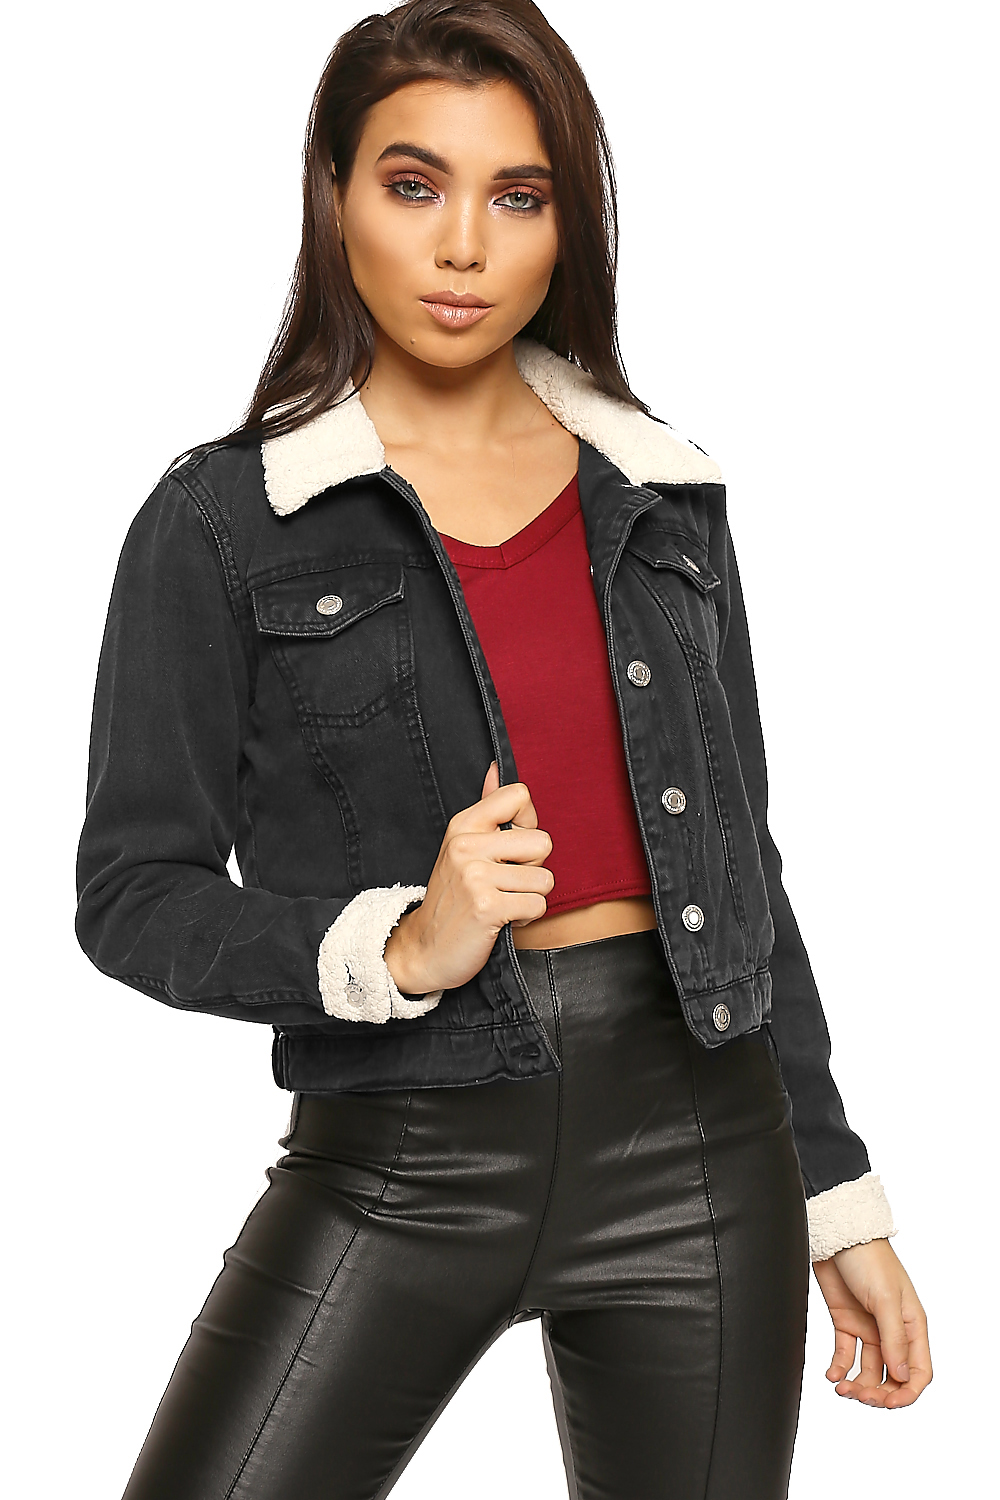 Ladies Denim Jackets. The spontaneous look of ladies denim jackets is forever fashionable, whether the look of the jacket is cropped or longer, darkly colored or lightly colored. Available in an assortment of styles, from dark wash denim to acid wash denim, ladies denim jackets make all of the looks in your wardrobe seem edgier.